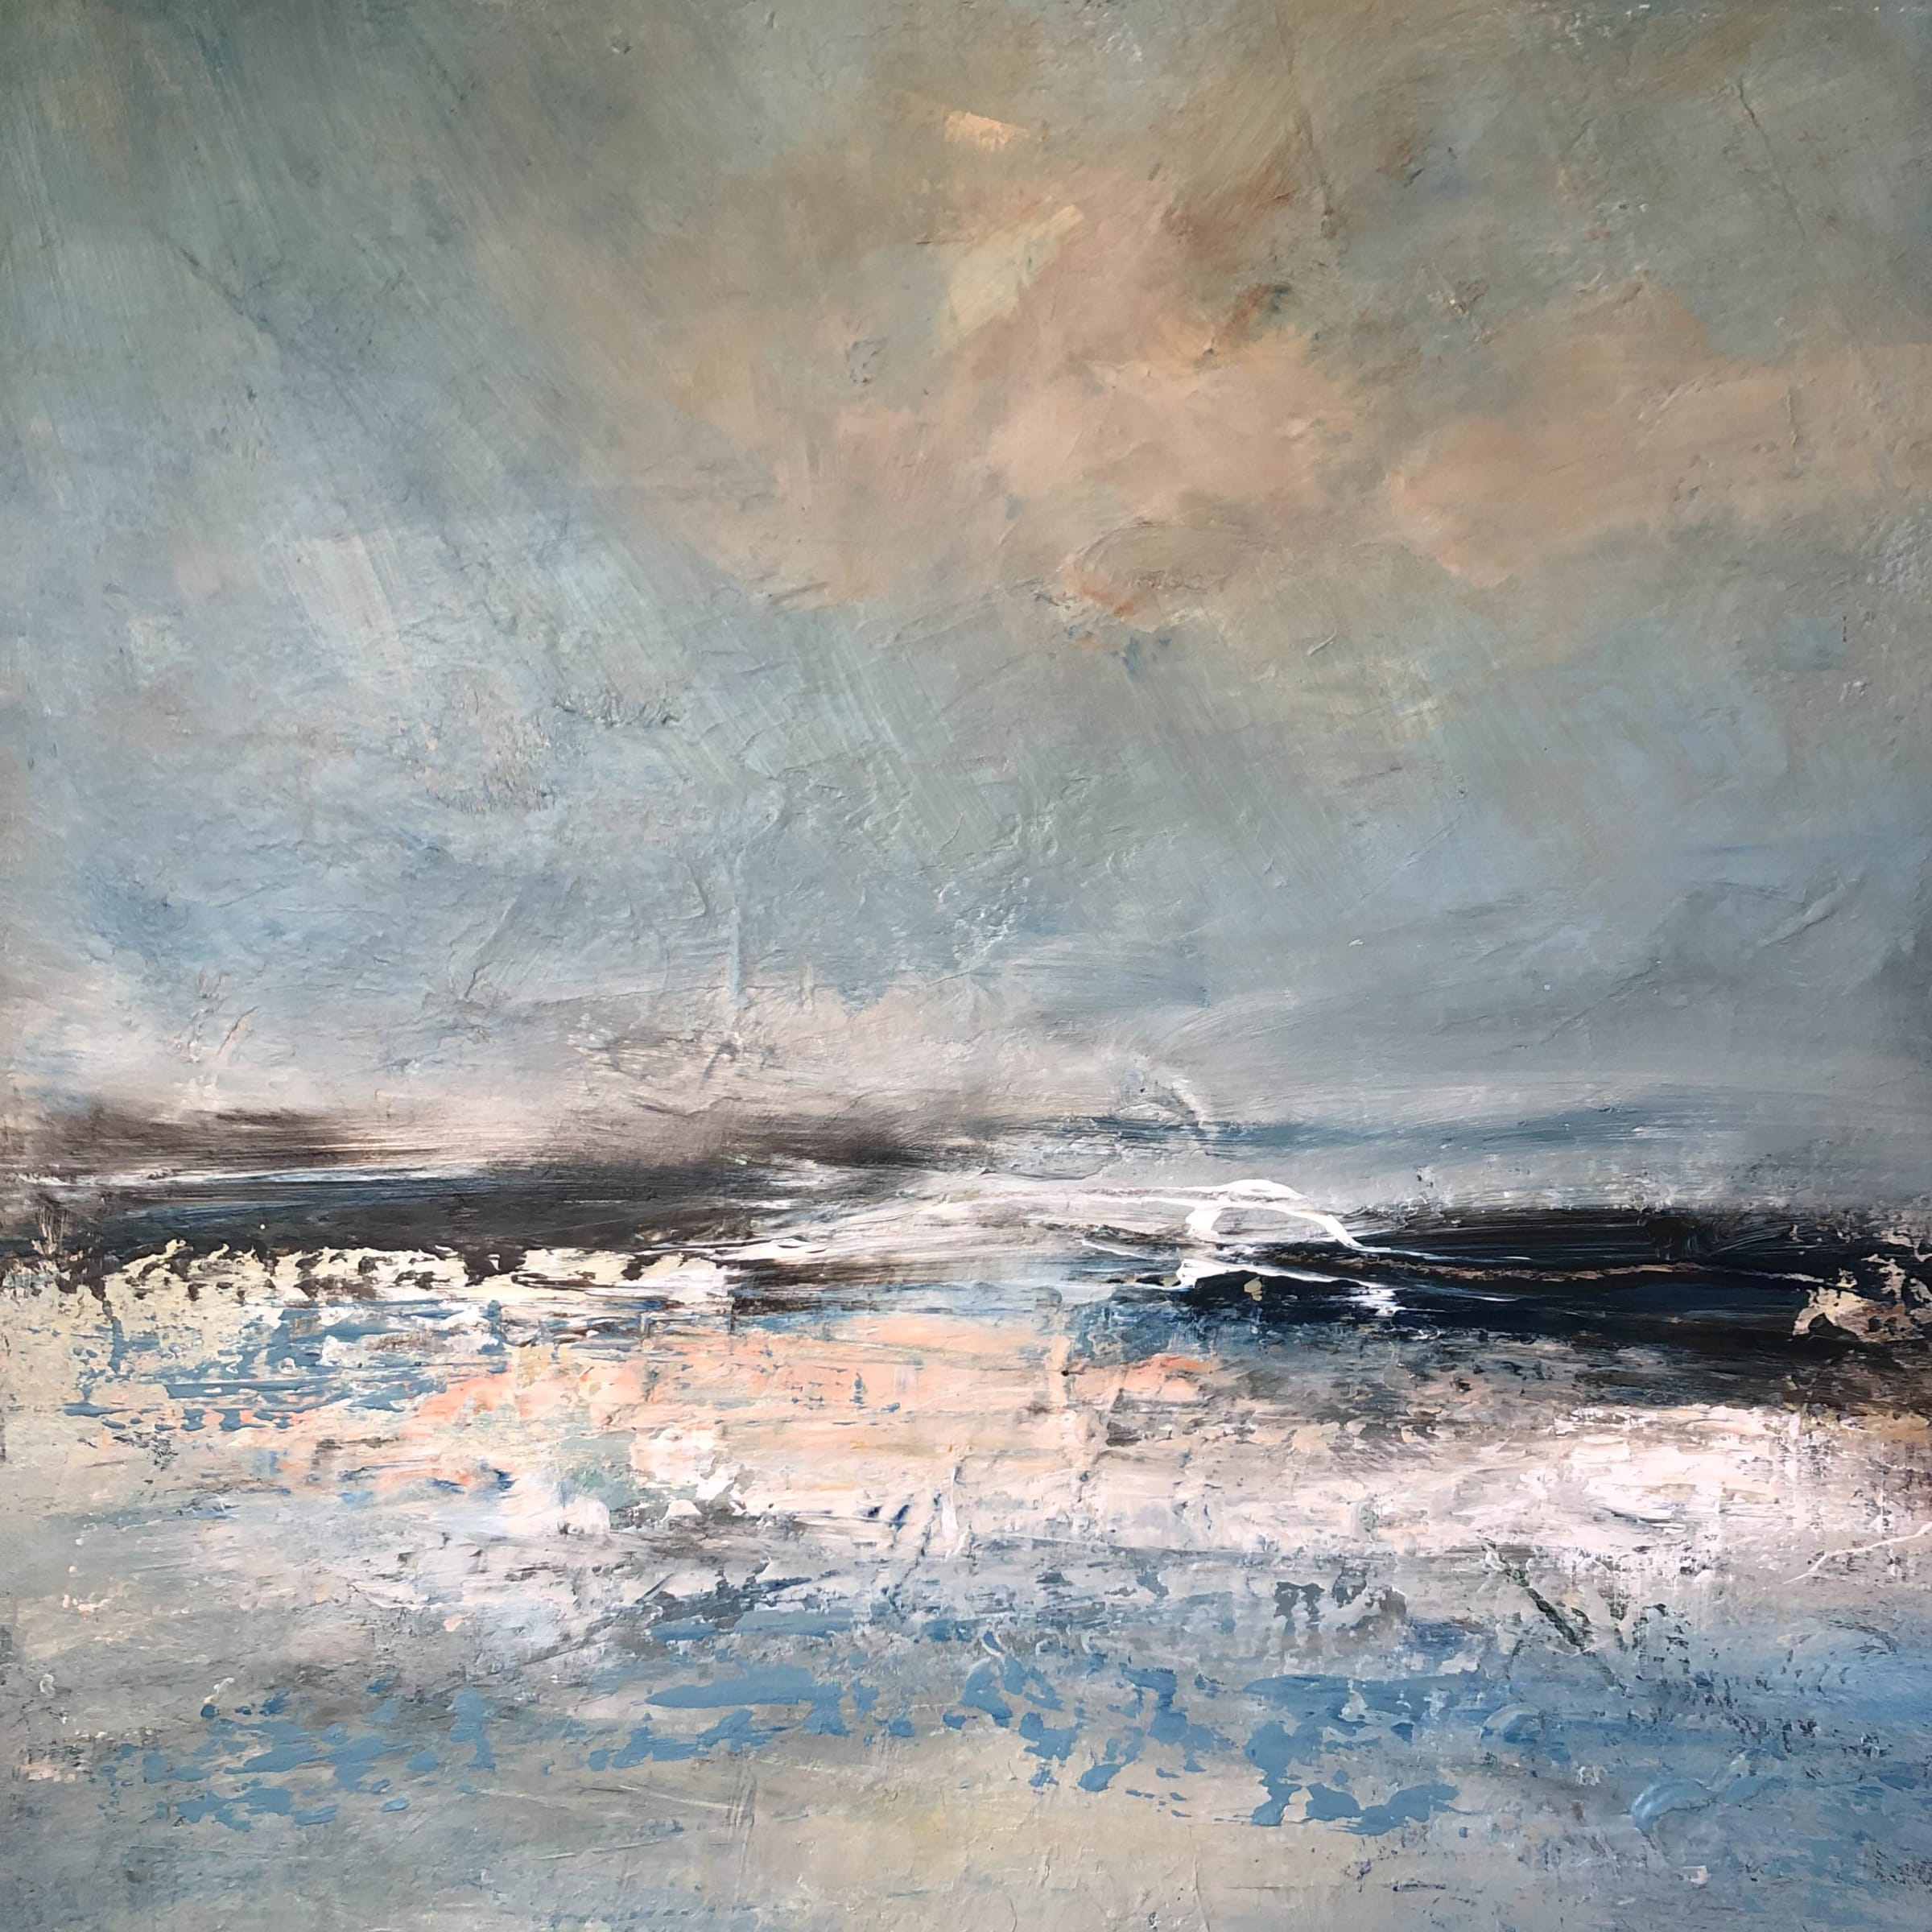 "<span class=""link fancybox-details-link""><a href=""/artists/41-erin-ward/works/7219-erin-ward-high-tide-2020/"">View Detail Page</a></span><div class=""artist""><strong>Erin Ward</strong></div> b. 1966 <div class=""title""><em>High Tide</em>, 2020</div> <div class=""medium"">acrylic on canvas</div> <div class=""dimensions"">h. 76 cm x w. 76 cm</div><div class=""price"">£1,500.00</div><div class=""copyright_line"">Ownart: £150 x 10 Months, 0% APR</div>"